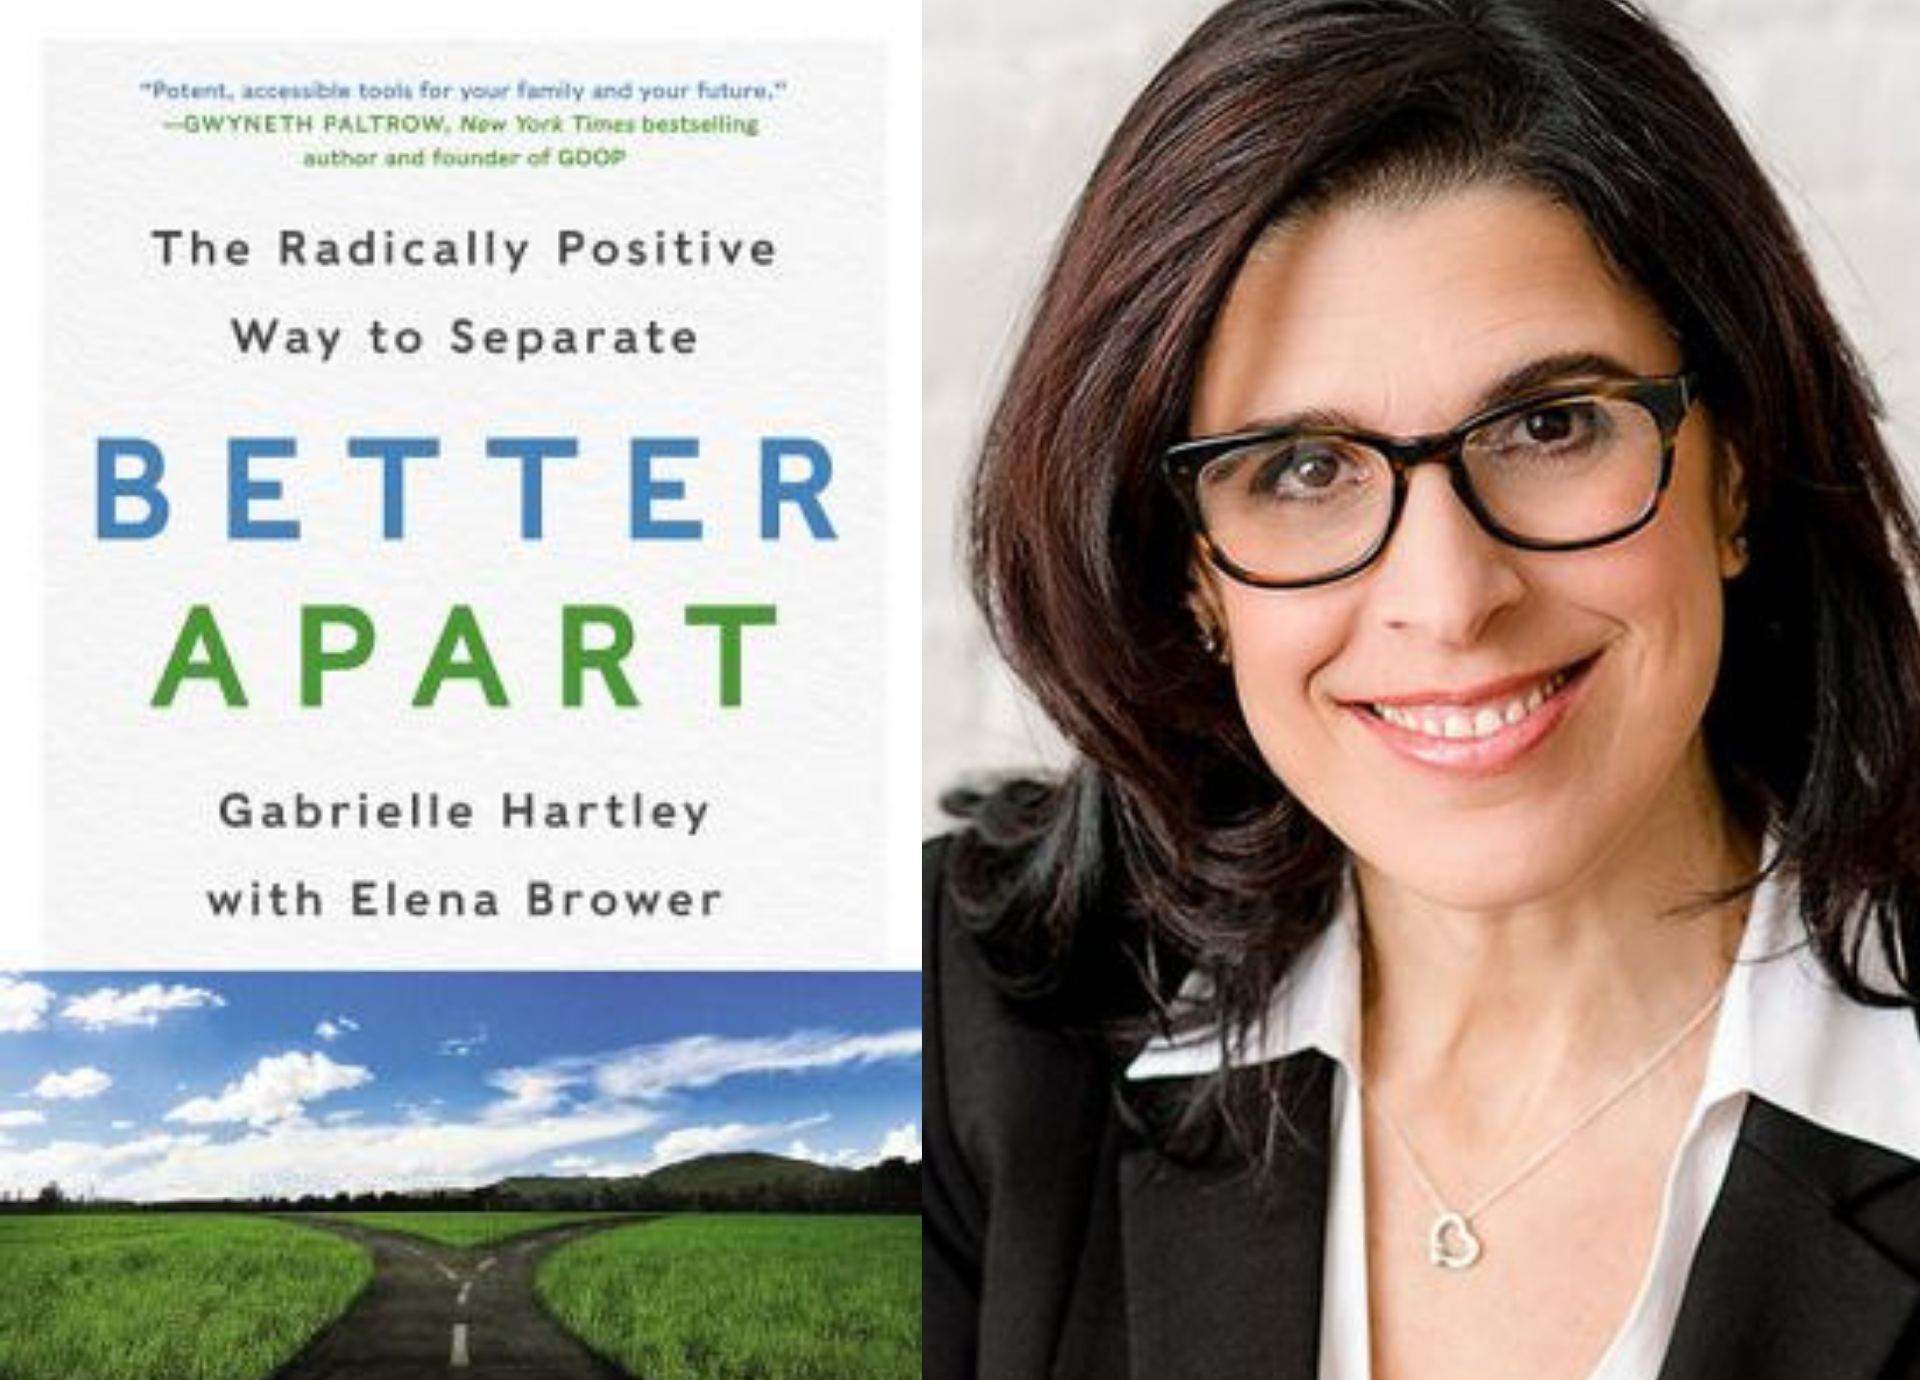 Interview with Gabrielle Hartley - Author of Better Apart: The Radically Positive Way to Separate